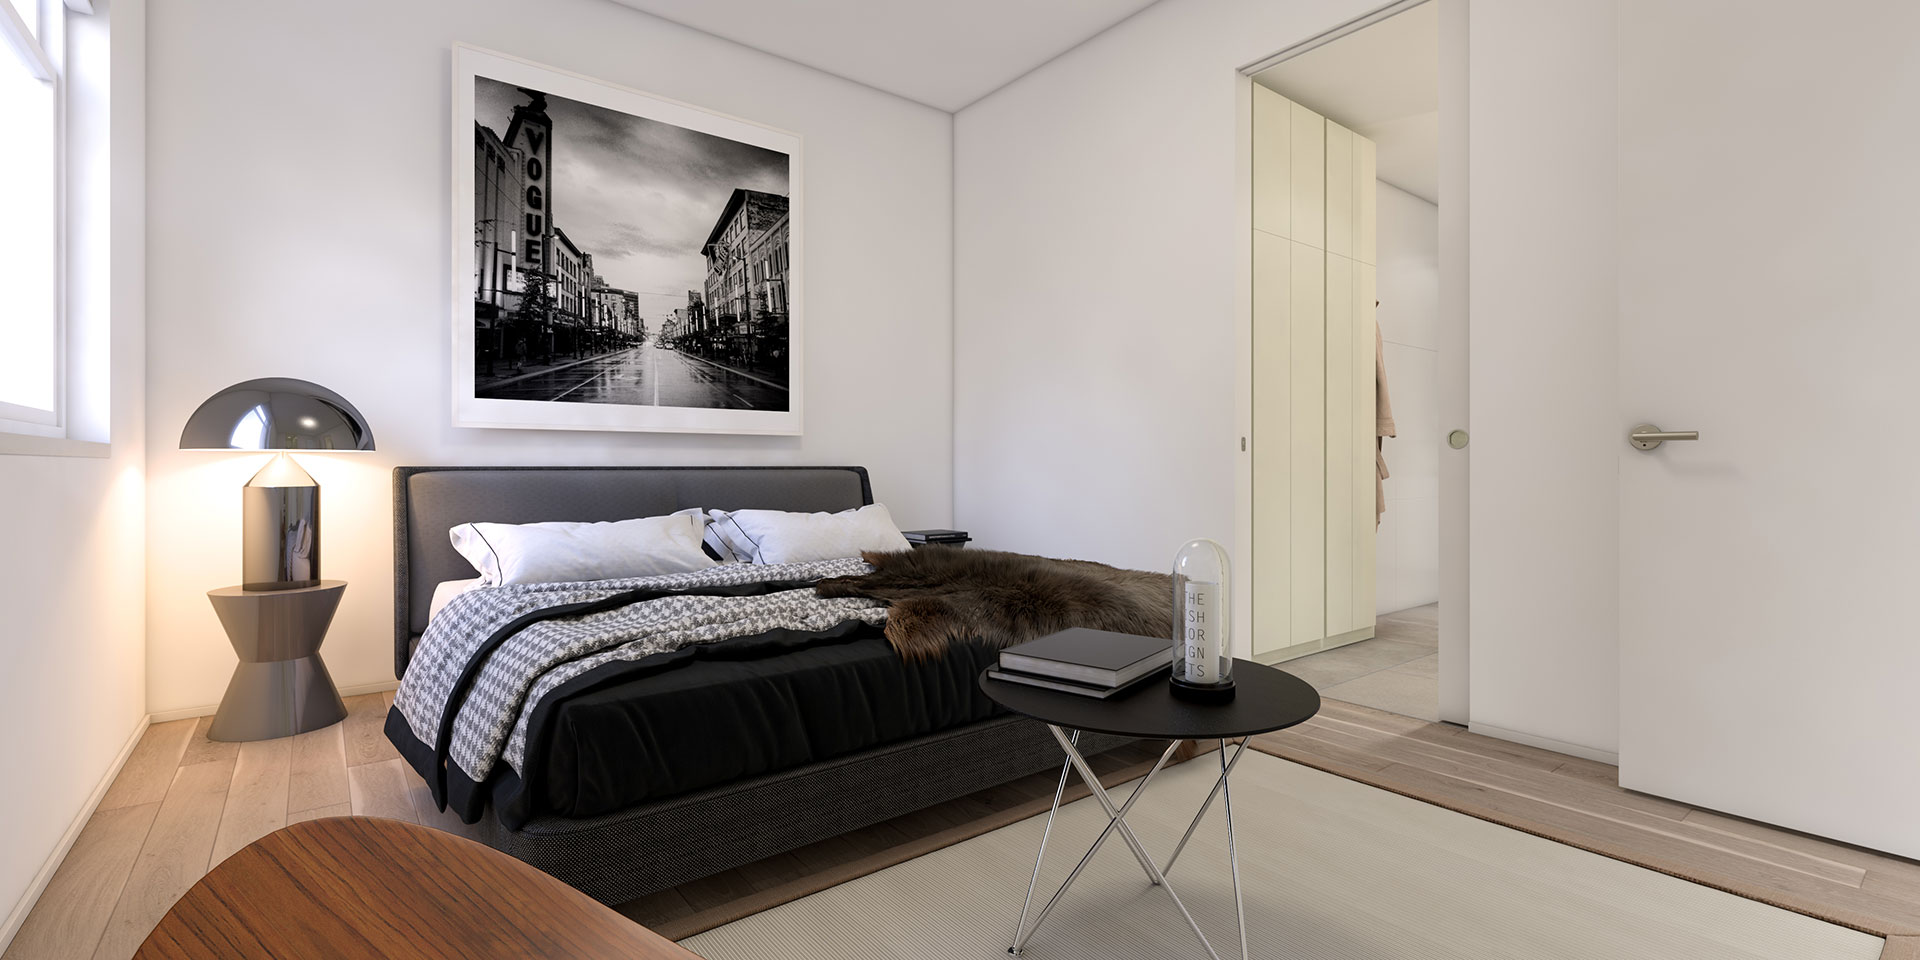 Turner's Dairy Townhouse Project - Unit 3 Bedroom Render